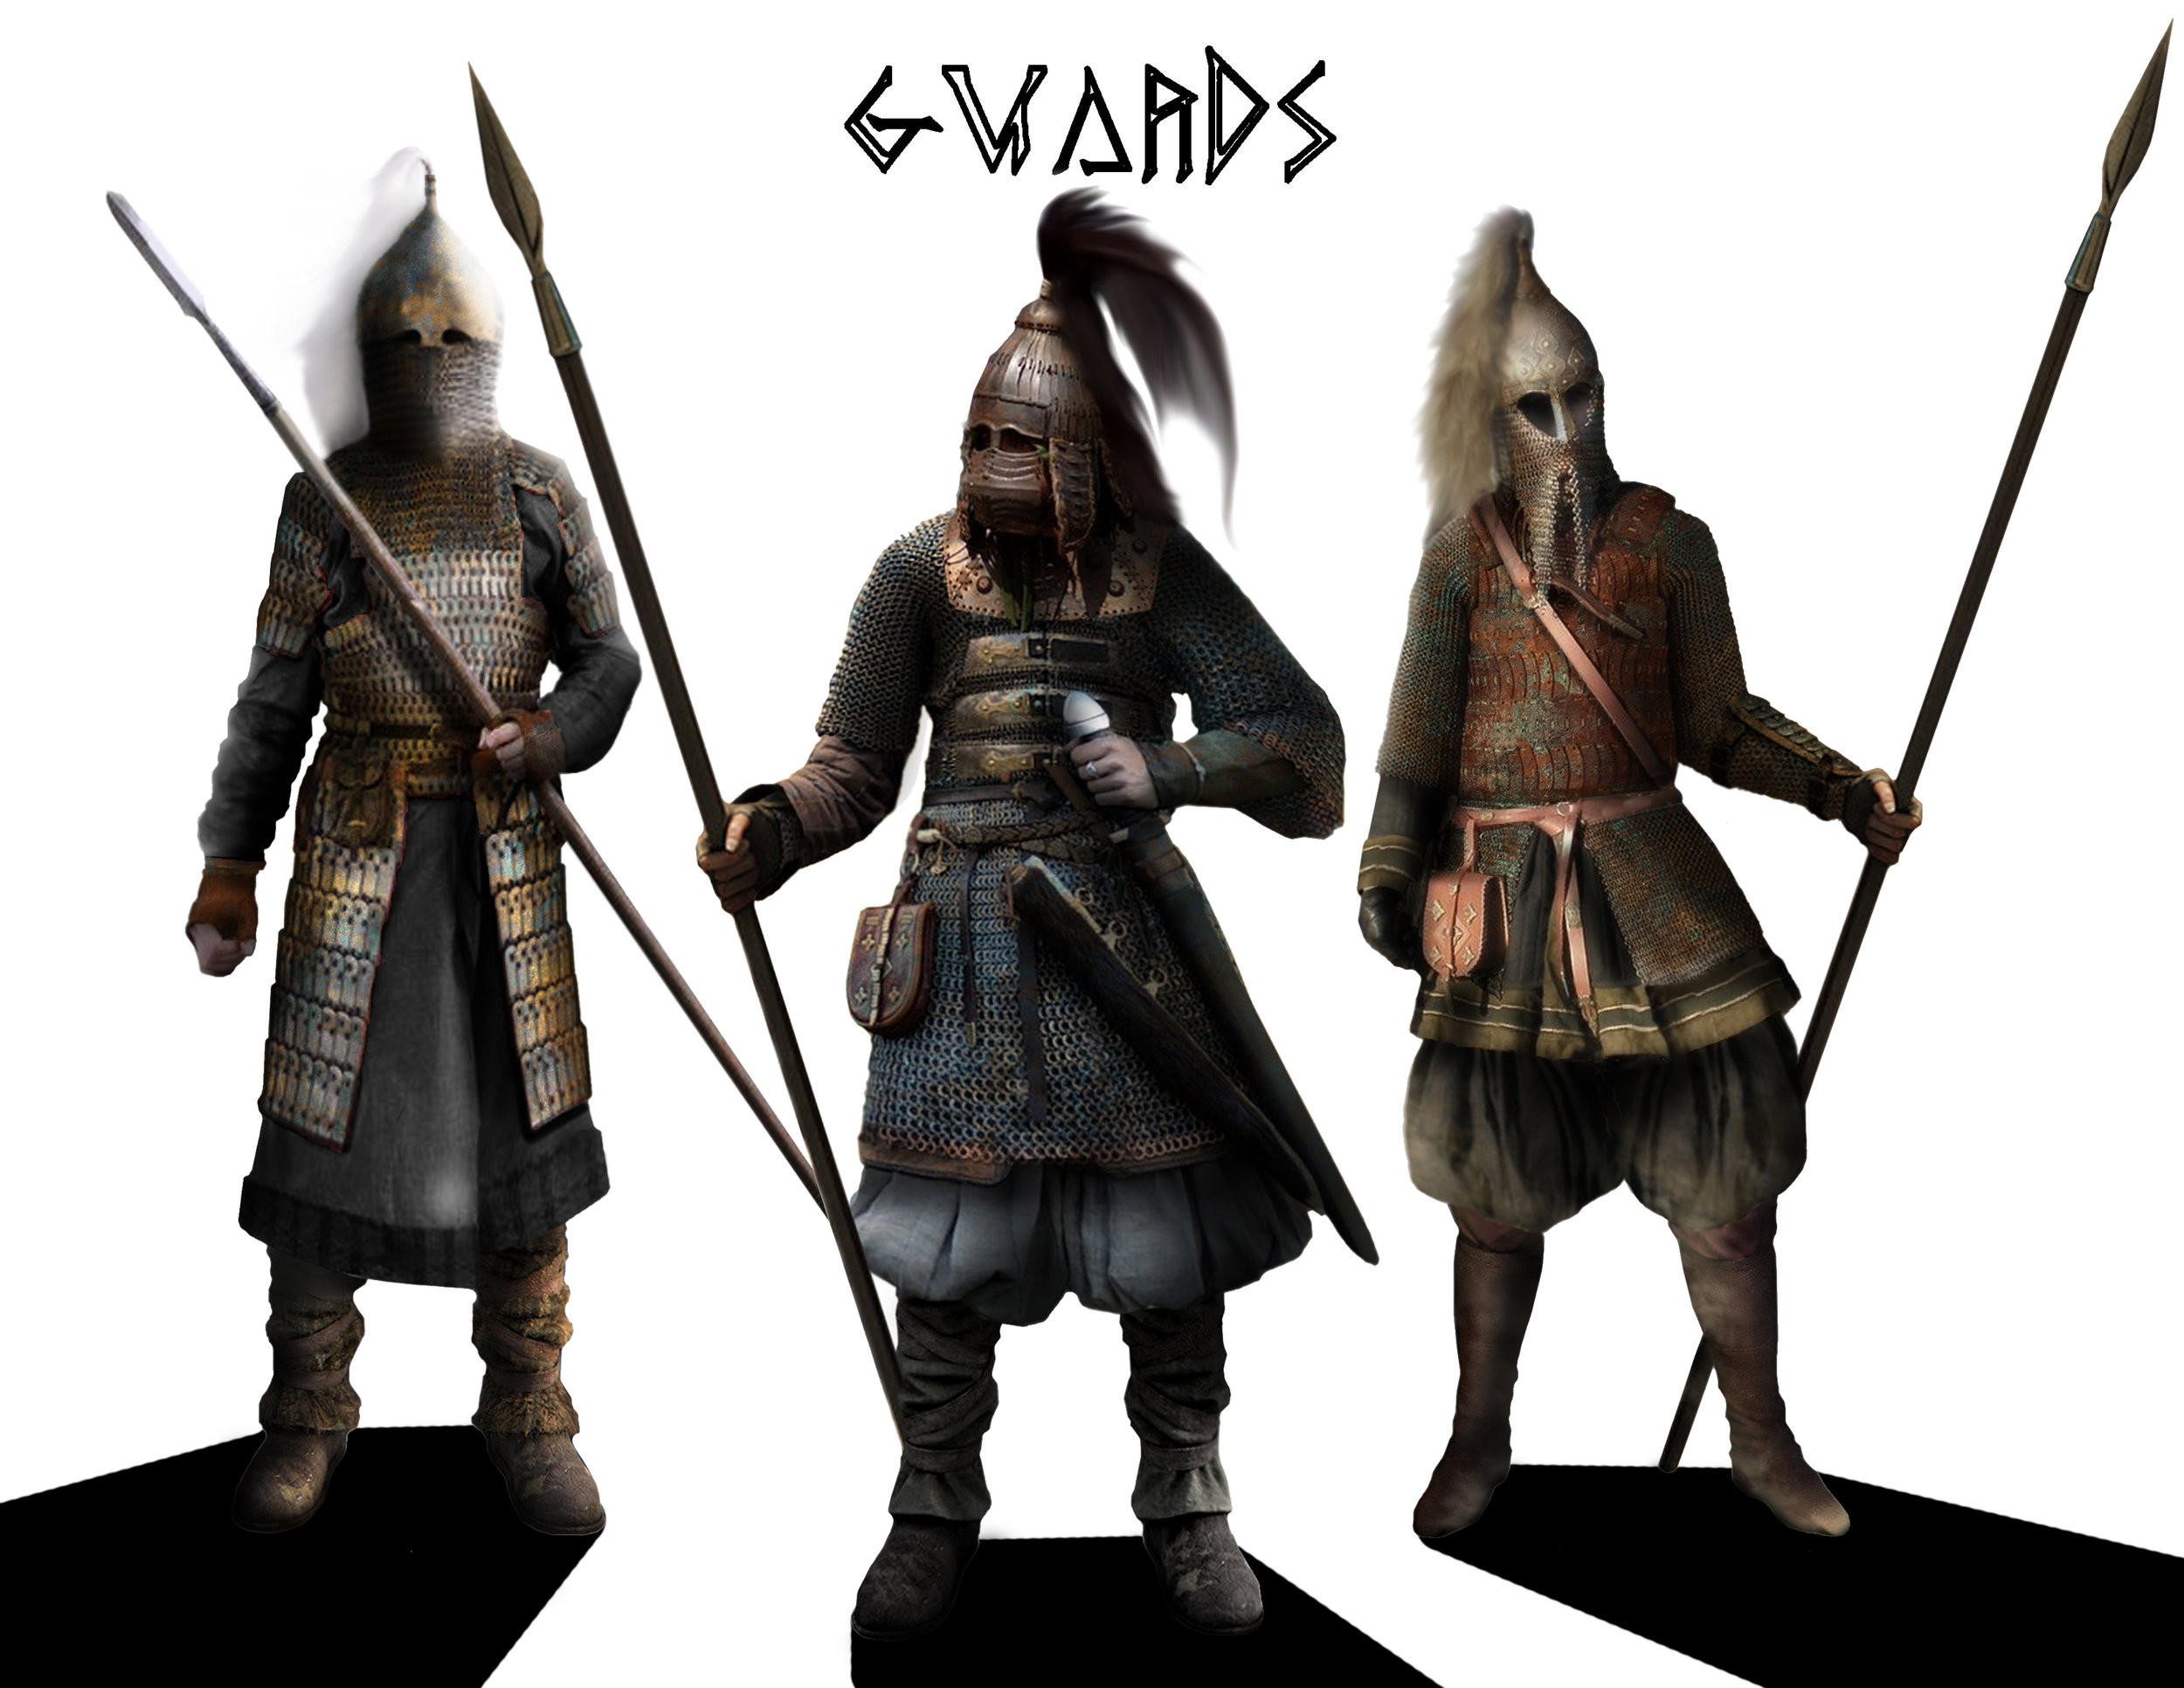 GUARDS - Costume Design